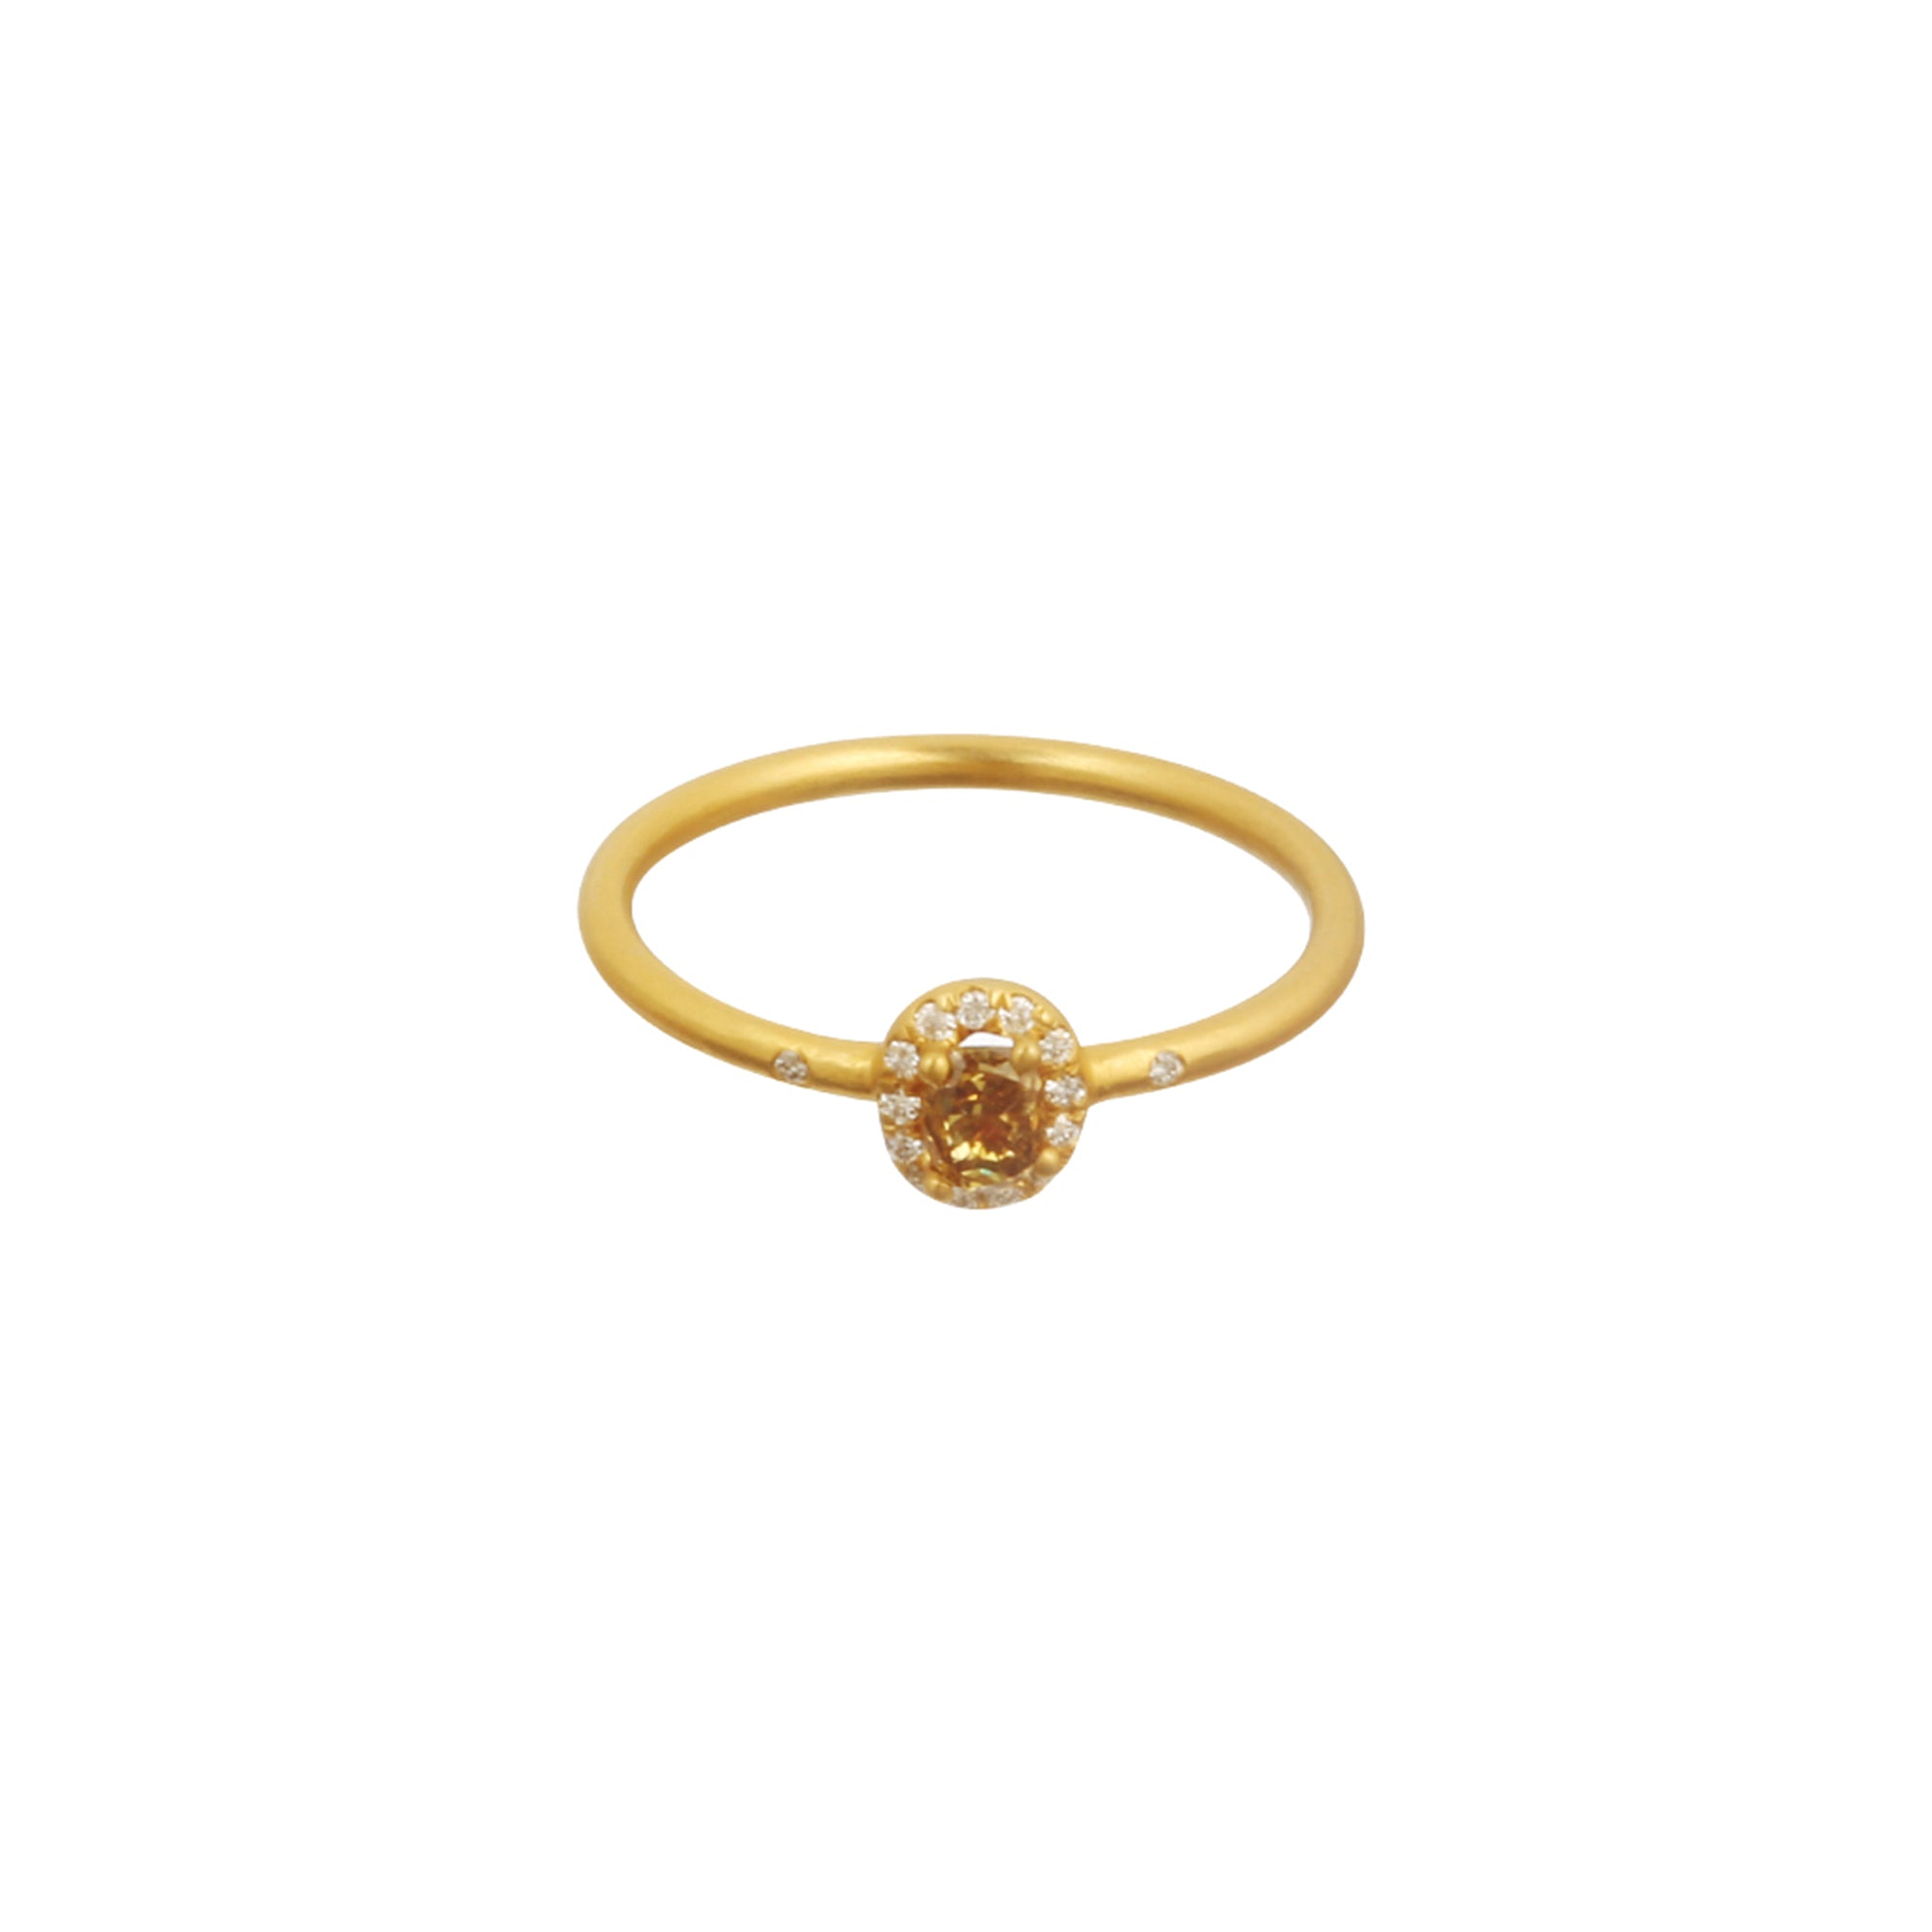 Gold & White Diamond Rose-Cut Diamond Stacking Ring by Loriann Stevenson for Broken English Jewelry